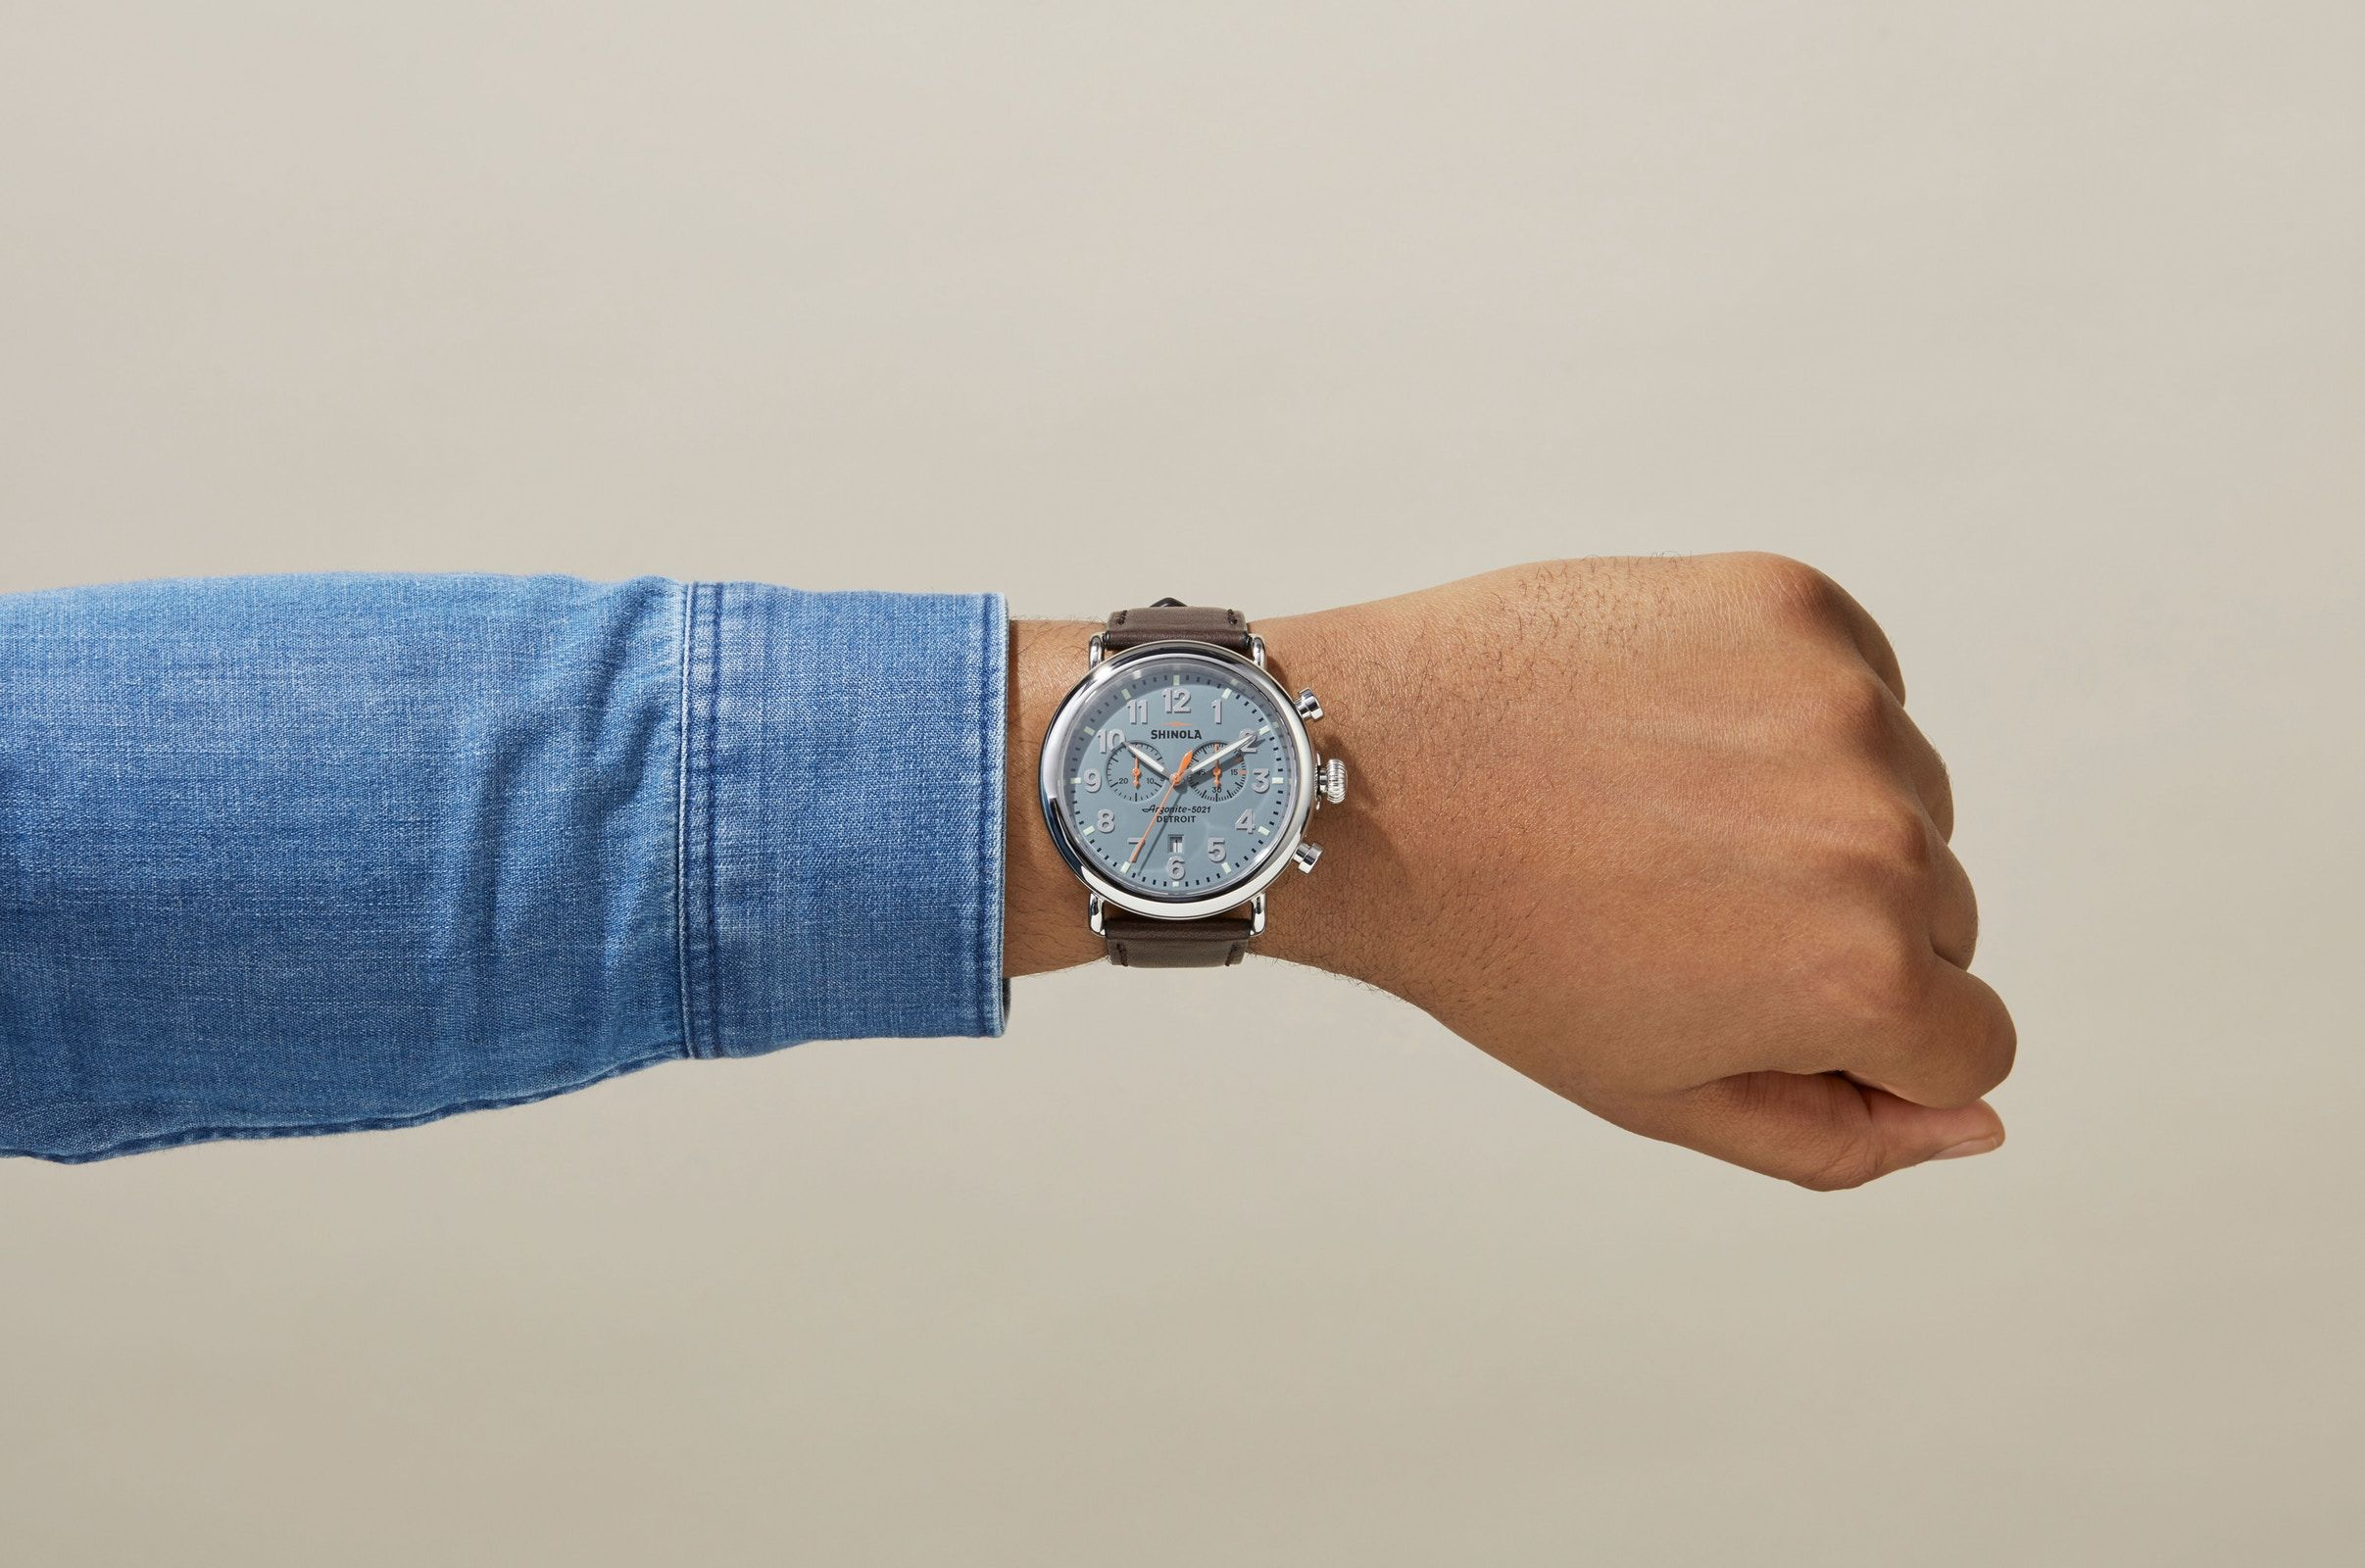 15 Insanely Cool Watches for Every Guy's Budget